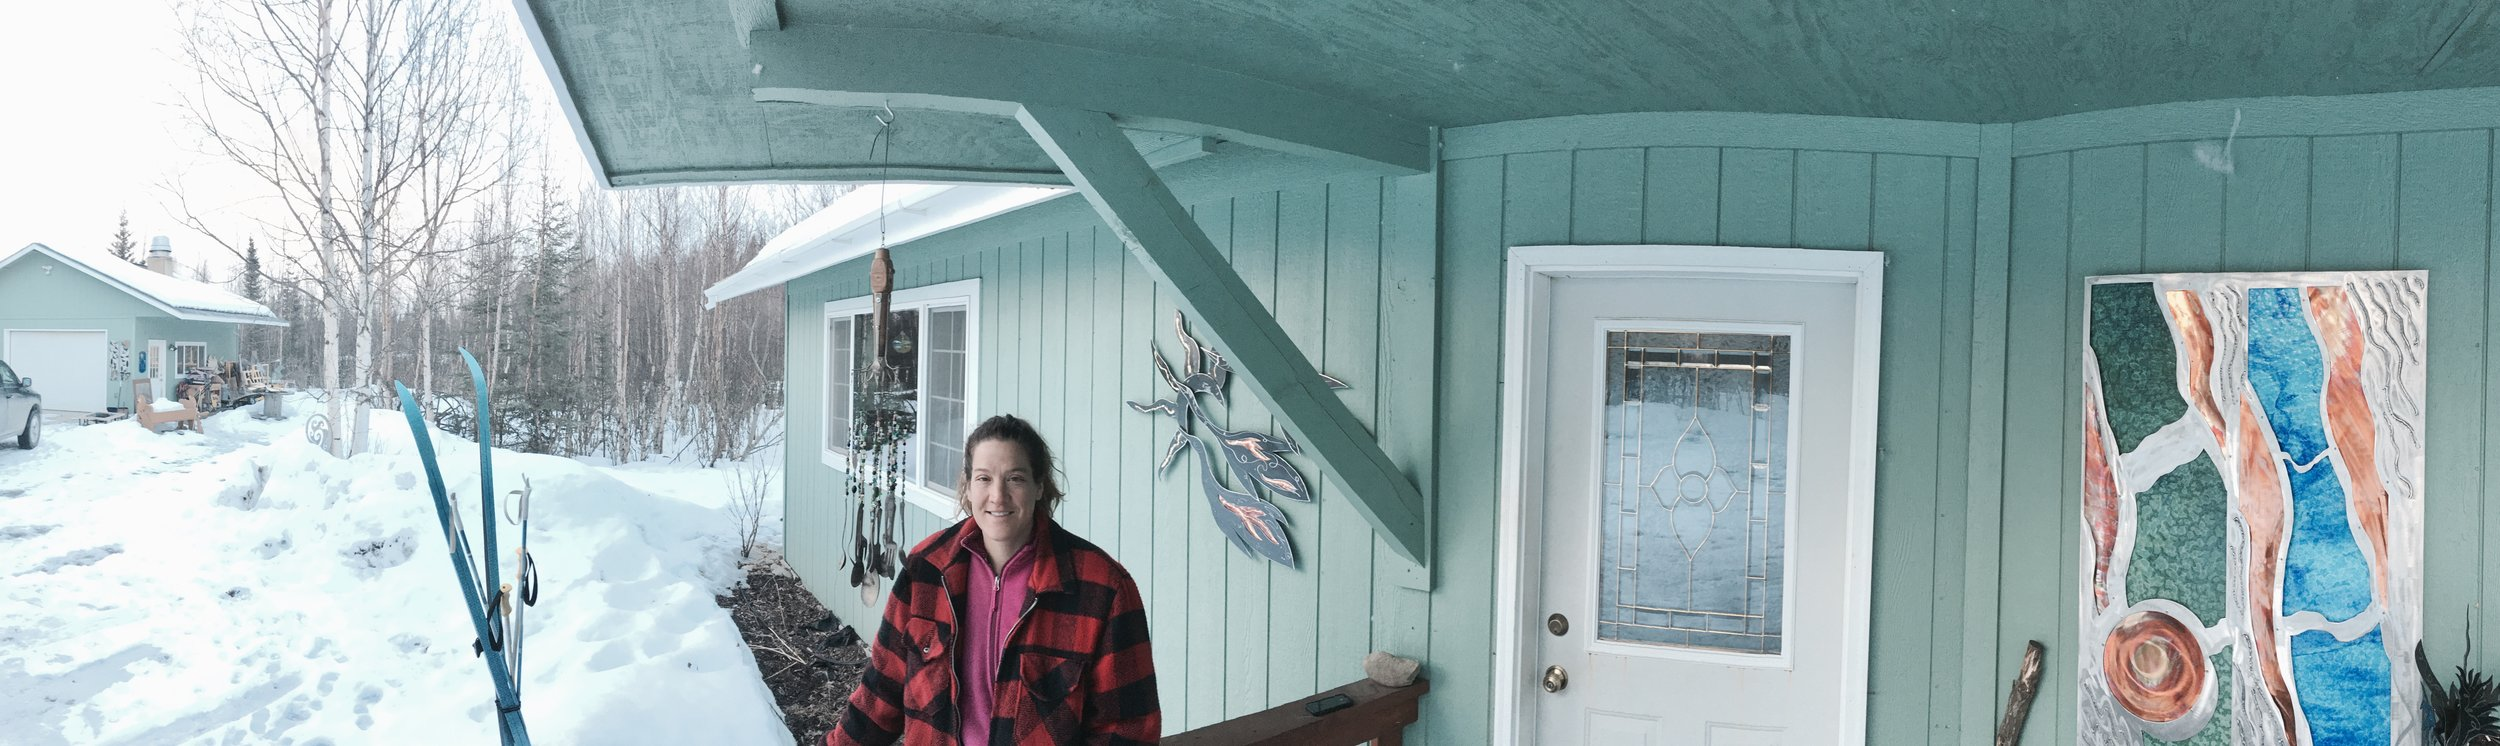 Holly Gittlein works in her studio, just outside her home in Wasilla, AK.